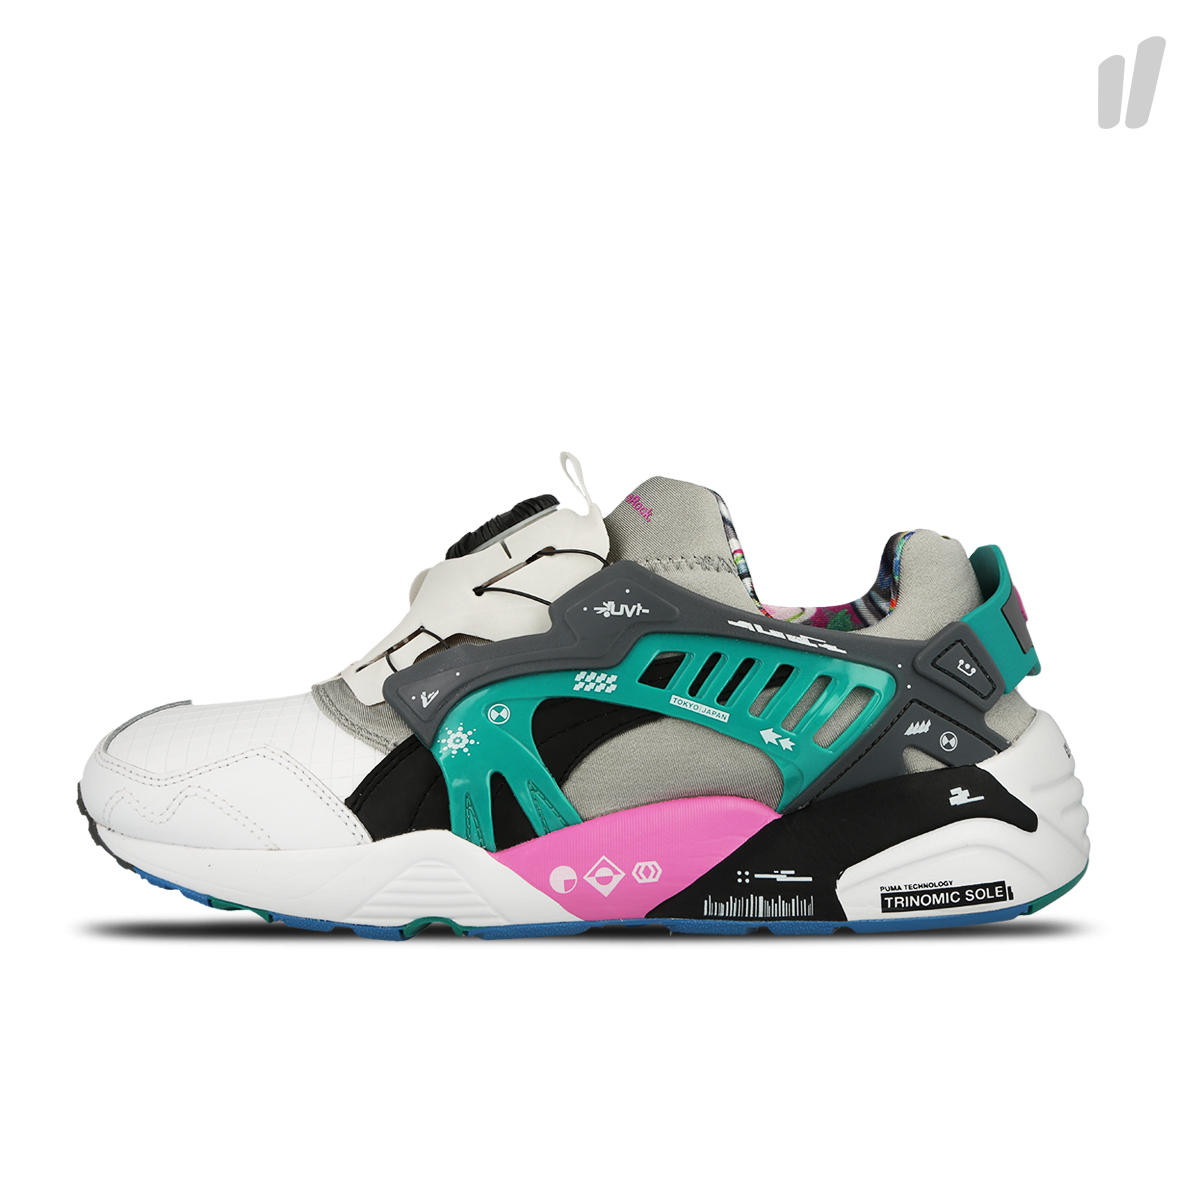 puma disc 361379 01 overkill berlin graffiti bekleidung sneaker. Black Bedroom Furniture Sets. Home Design Ideas